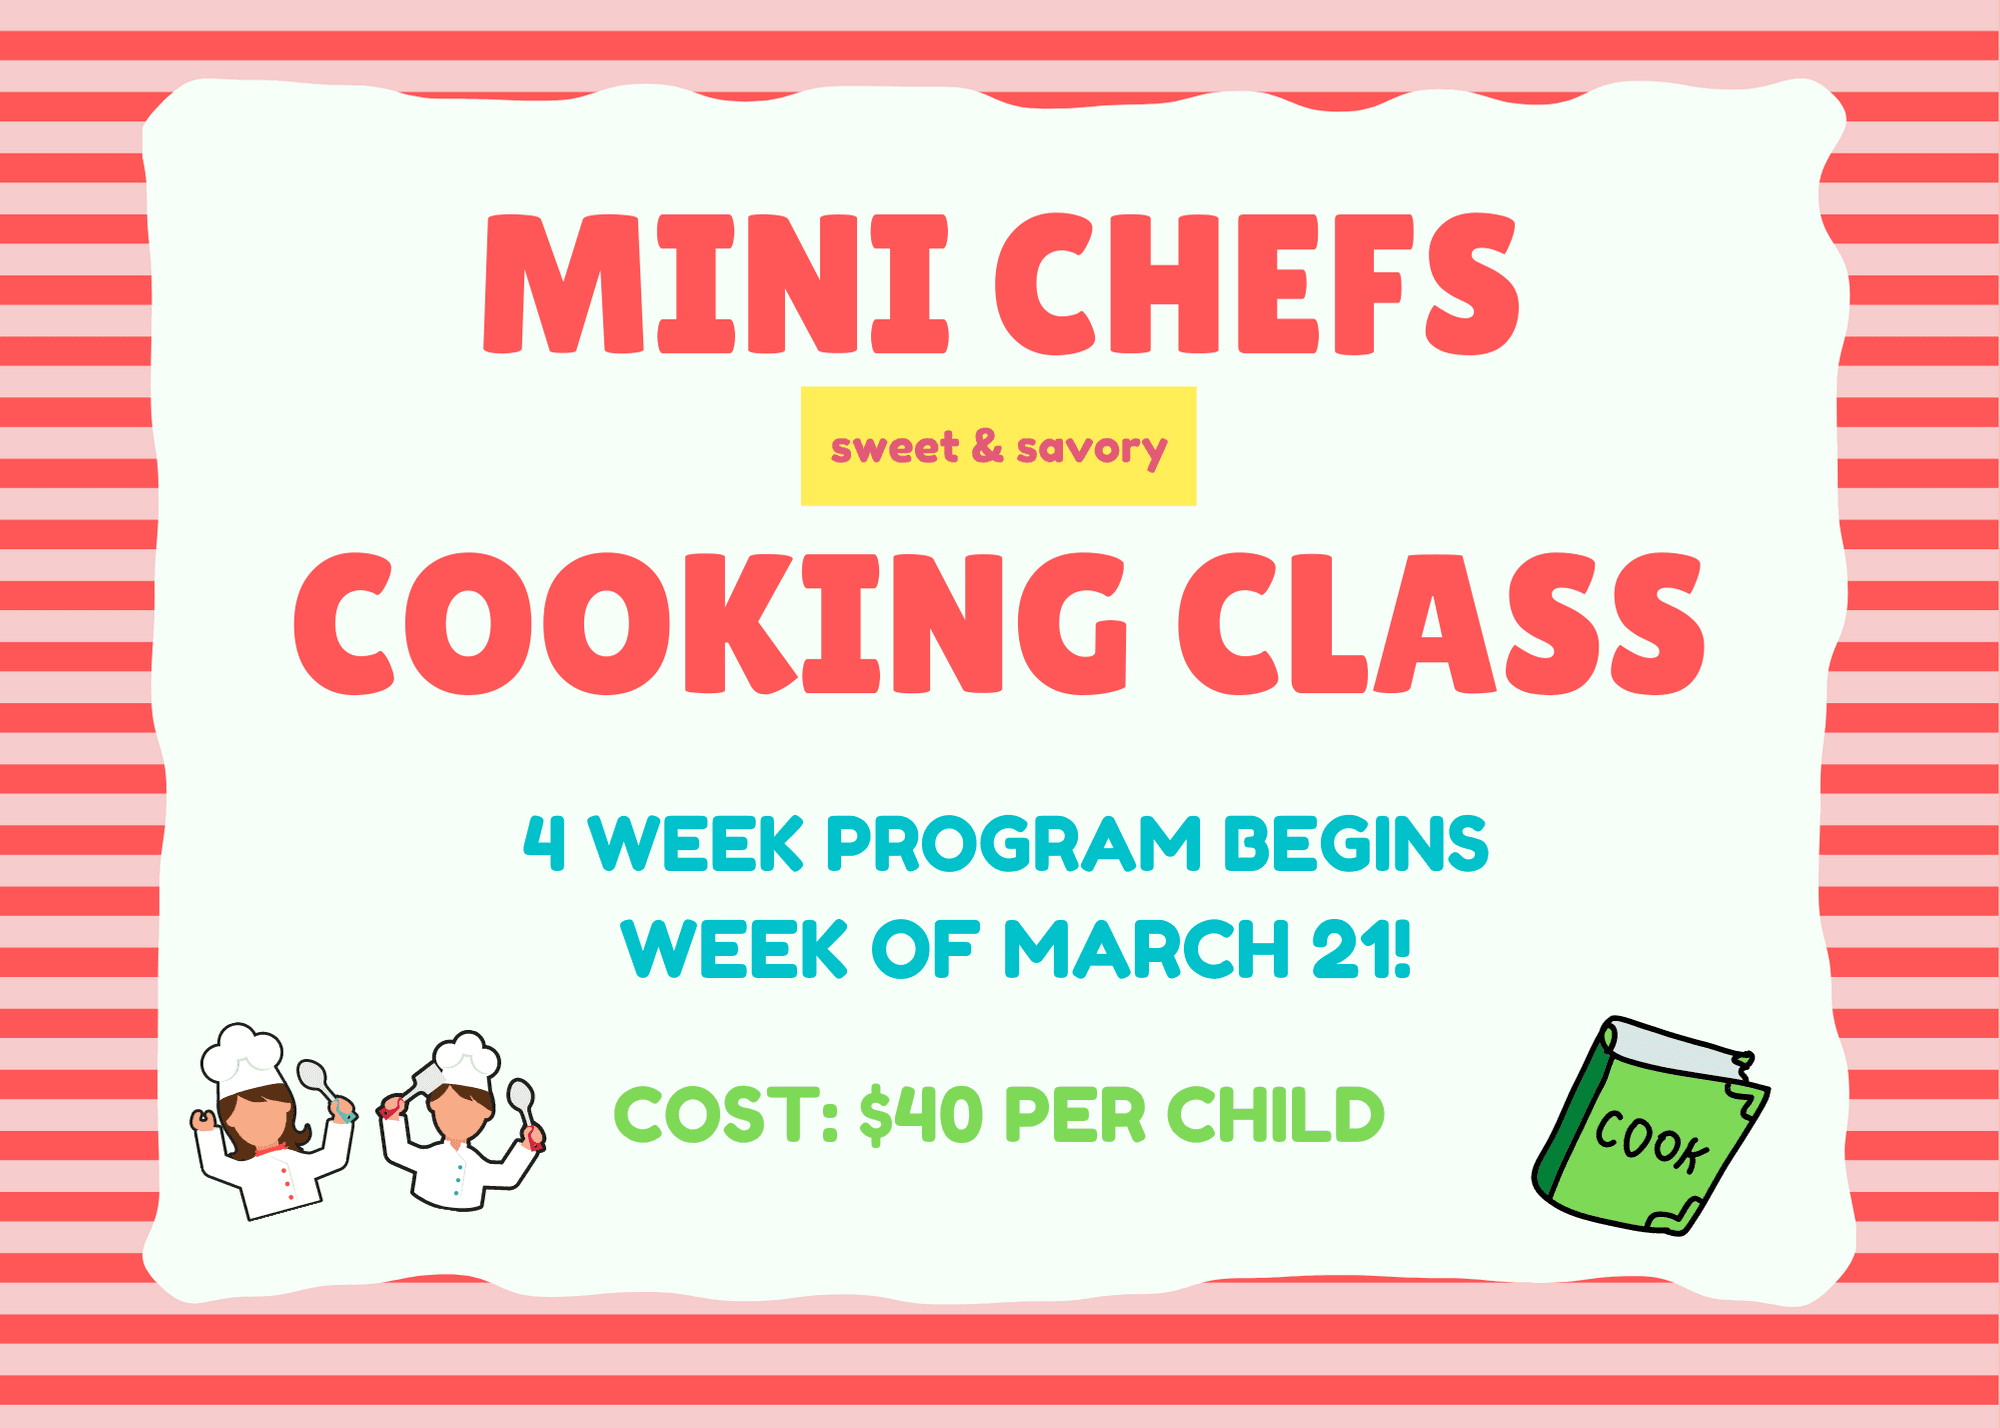 Mini Chefs Cooking Class March 2021 Program Promo